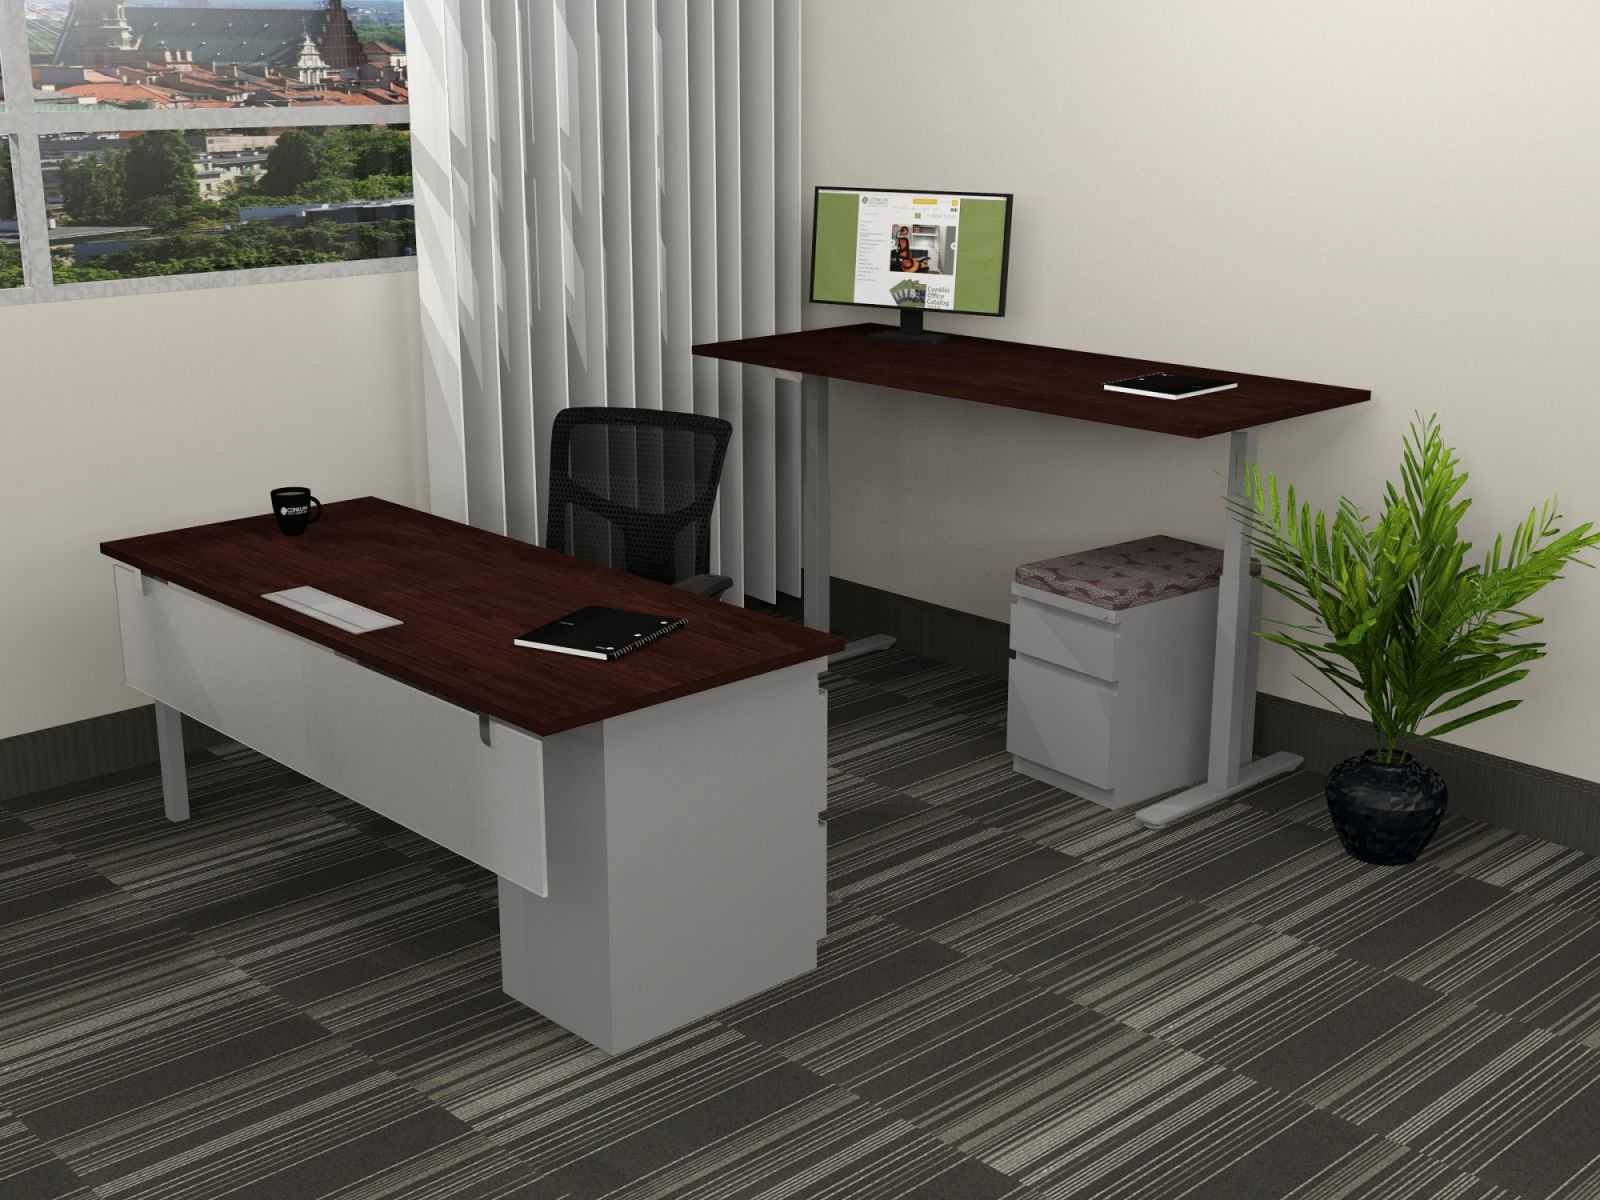 B6006 - Single Sit/Stand Height Adjustable Desk